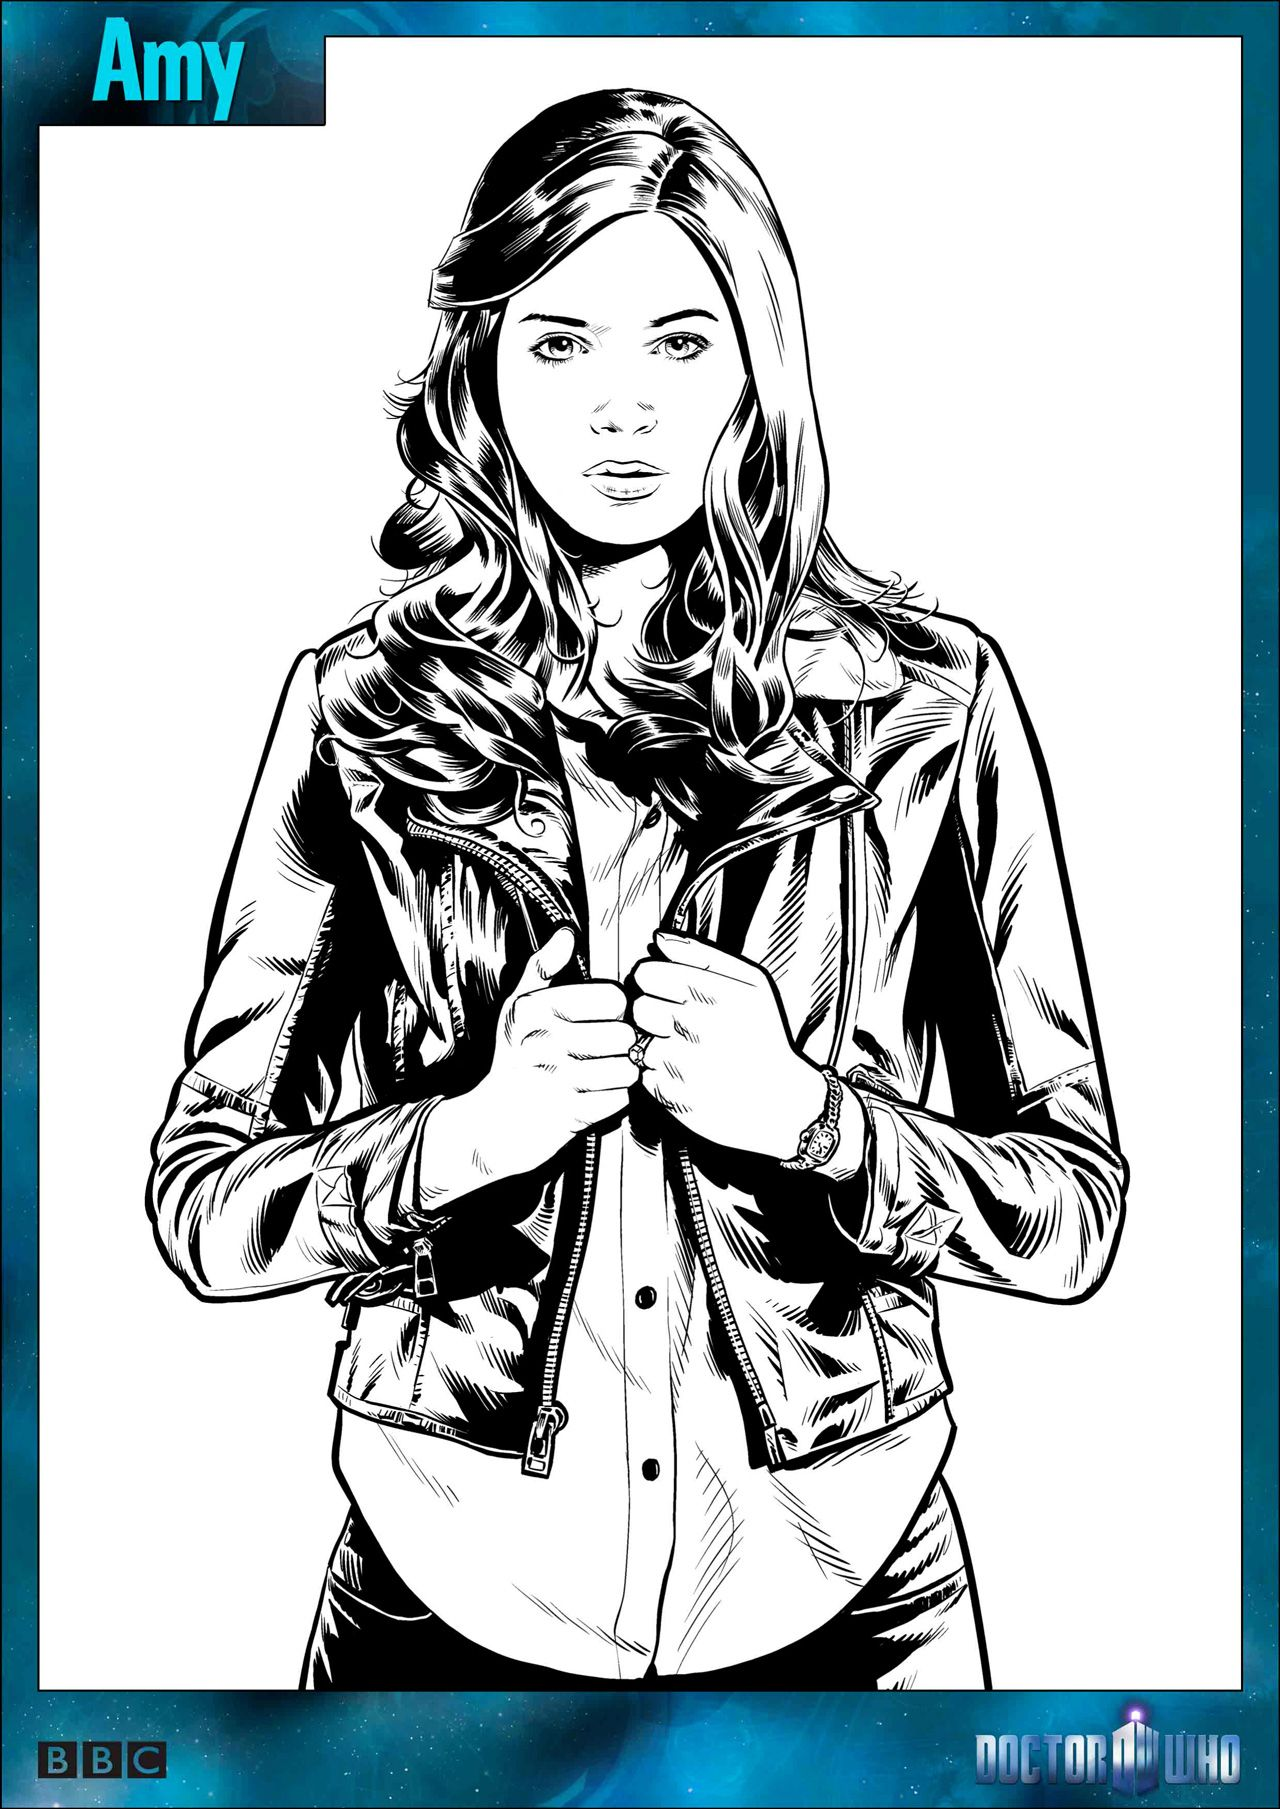 Doctor Who Colouring In Packs Aren T Just For Those Who Ask Their Parents For An Xbox Or Doctor Who Millie Marotta Coloring Book Fantastic Cities Coloring Book